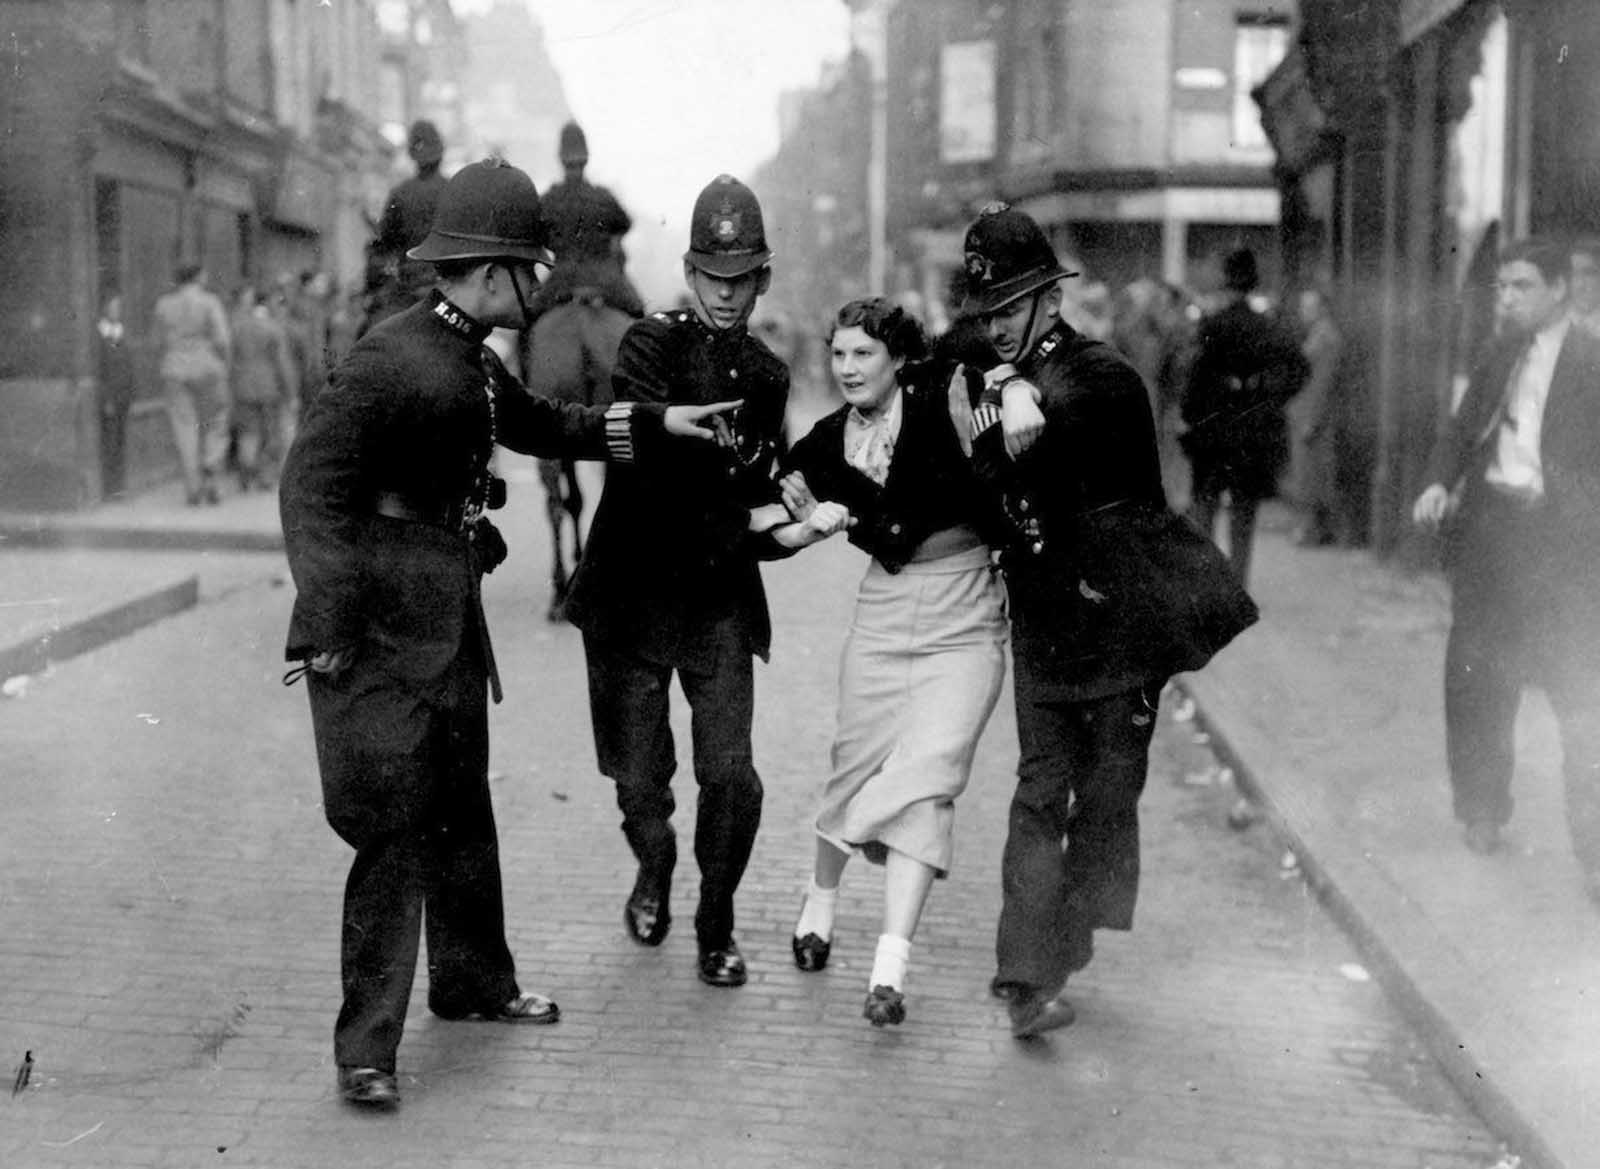 Policemen arresting a demonstrator when Fascists and Communists clashed during a march led by British Fascist Oswald Mosley in London's East End. 1936.